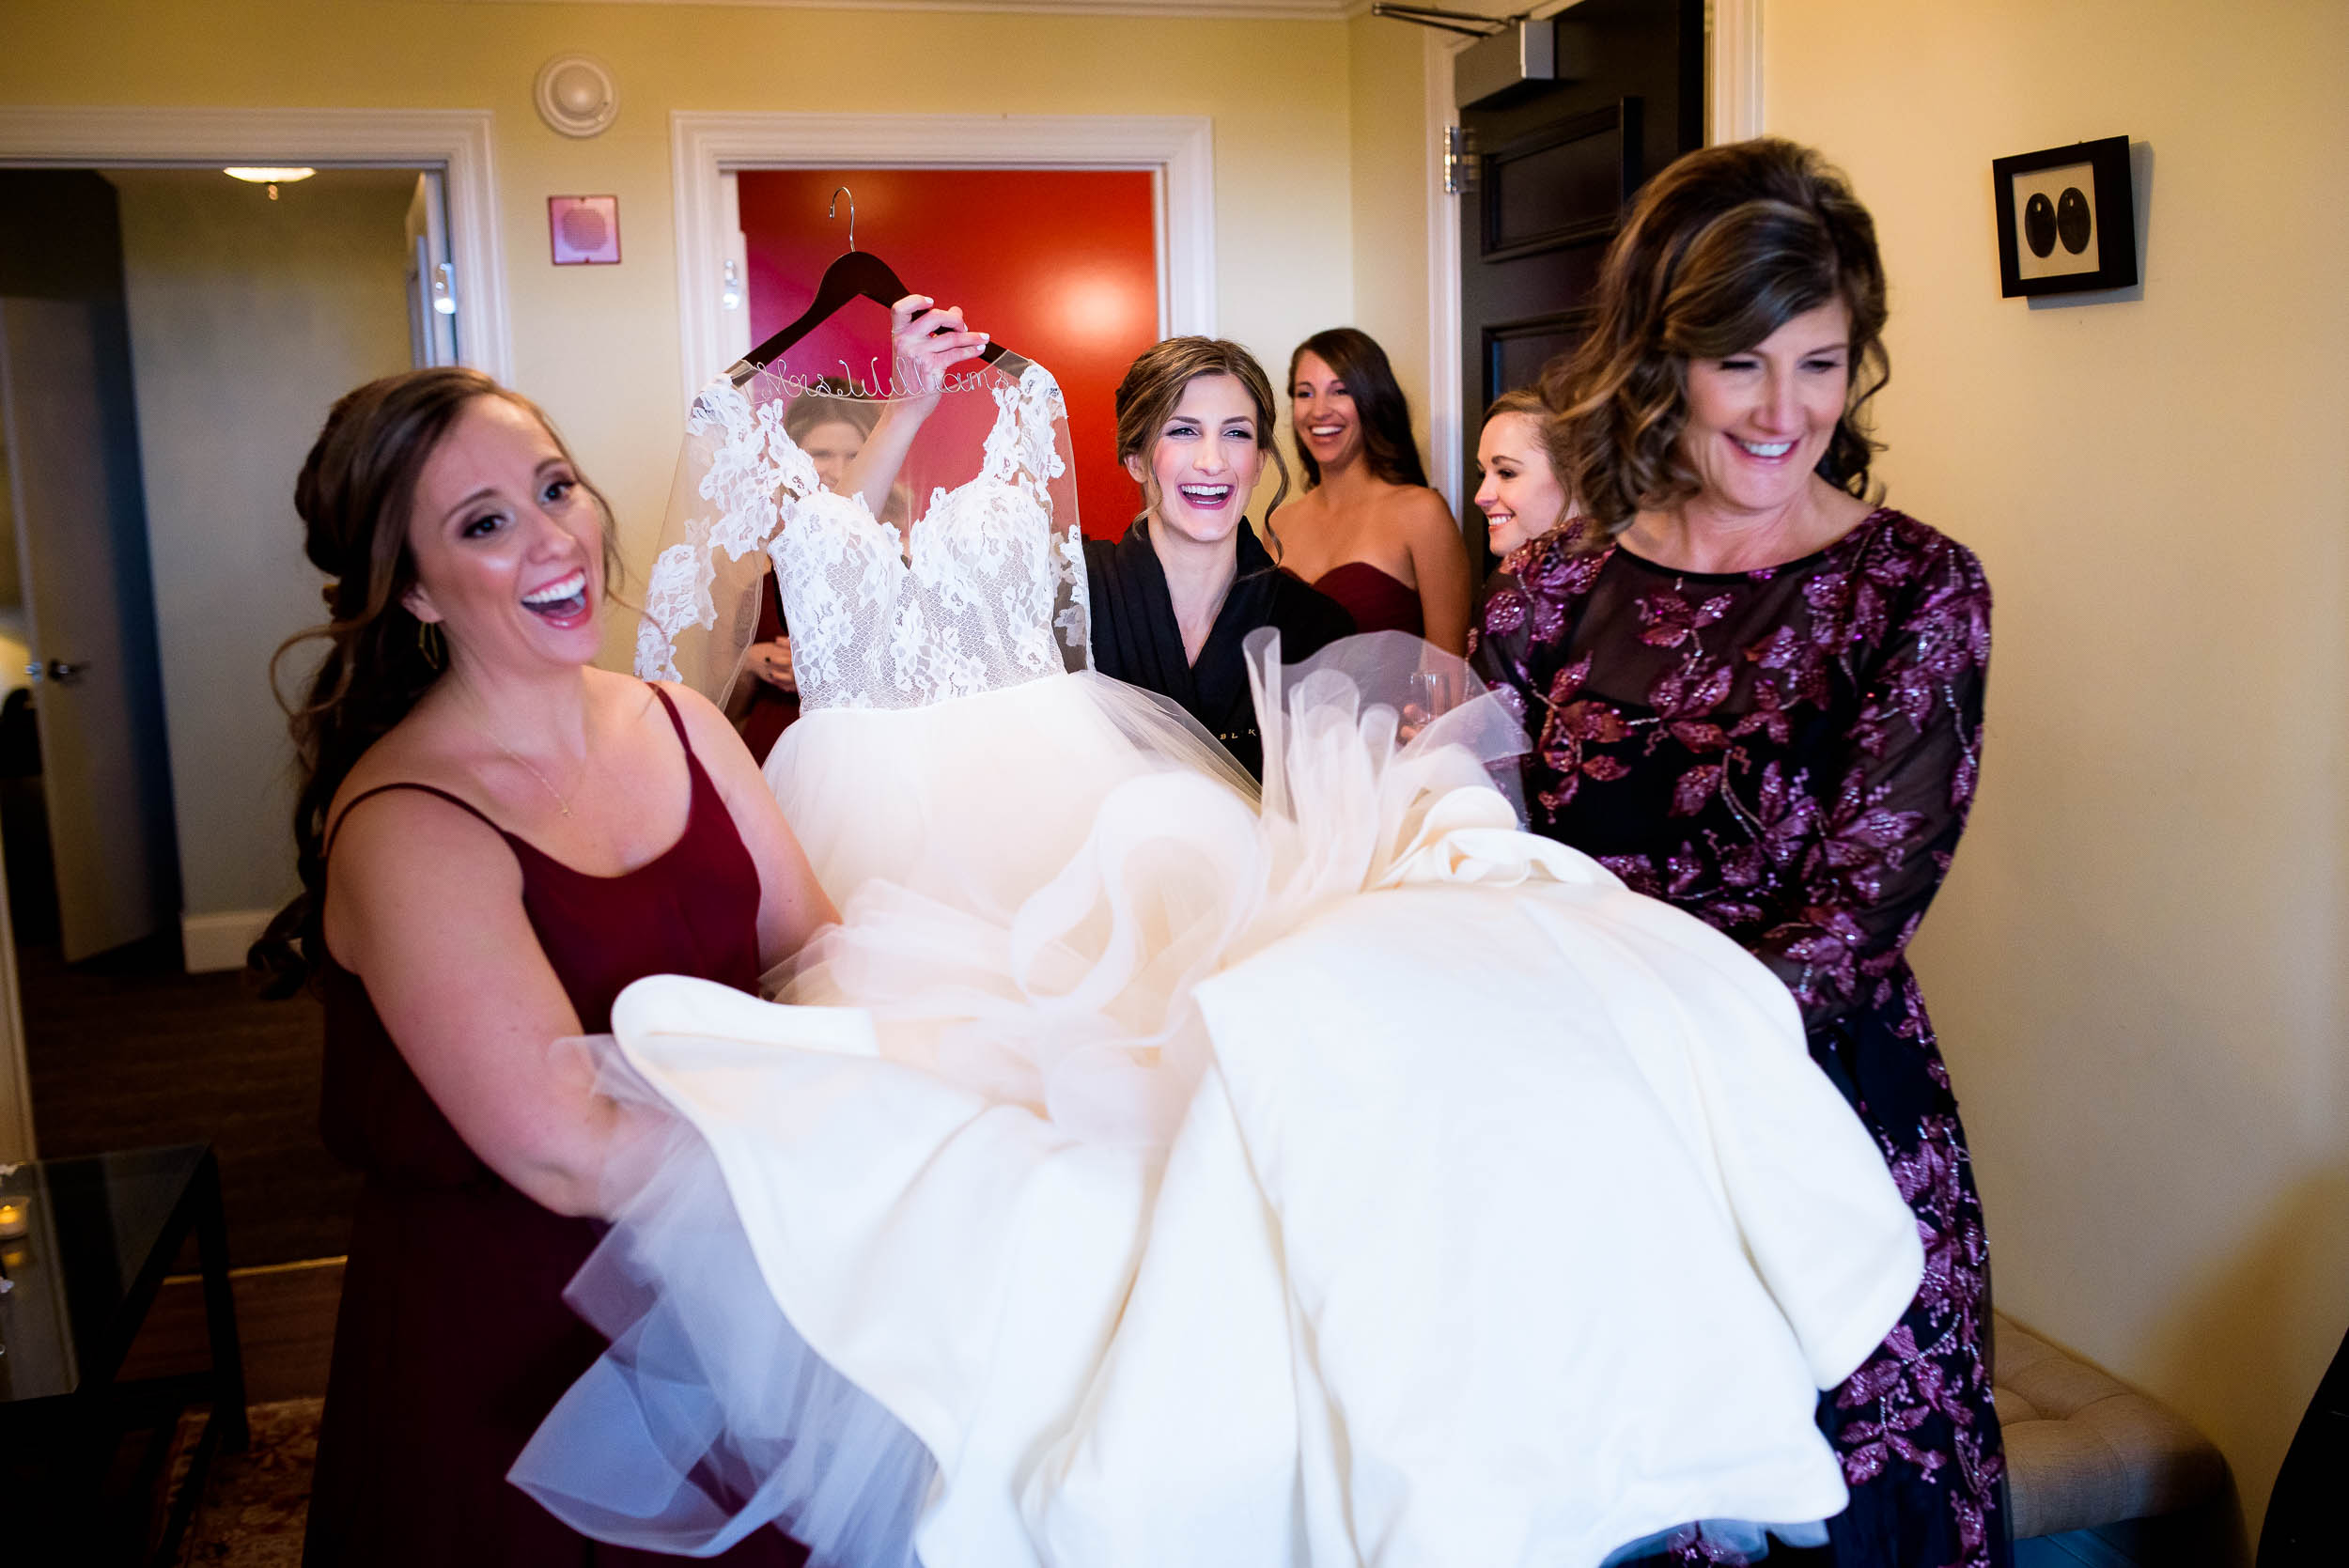 Bride and bridesmaid carry the dress during a Blackstone Chicago wedding.